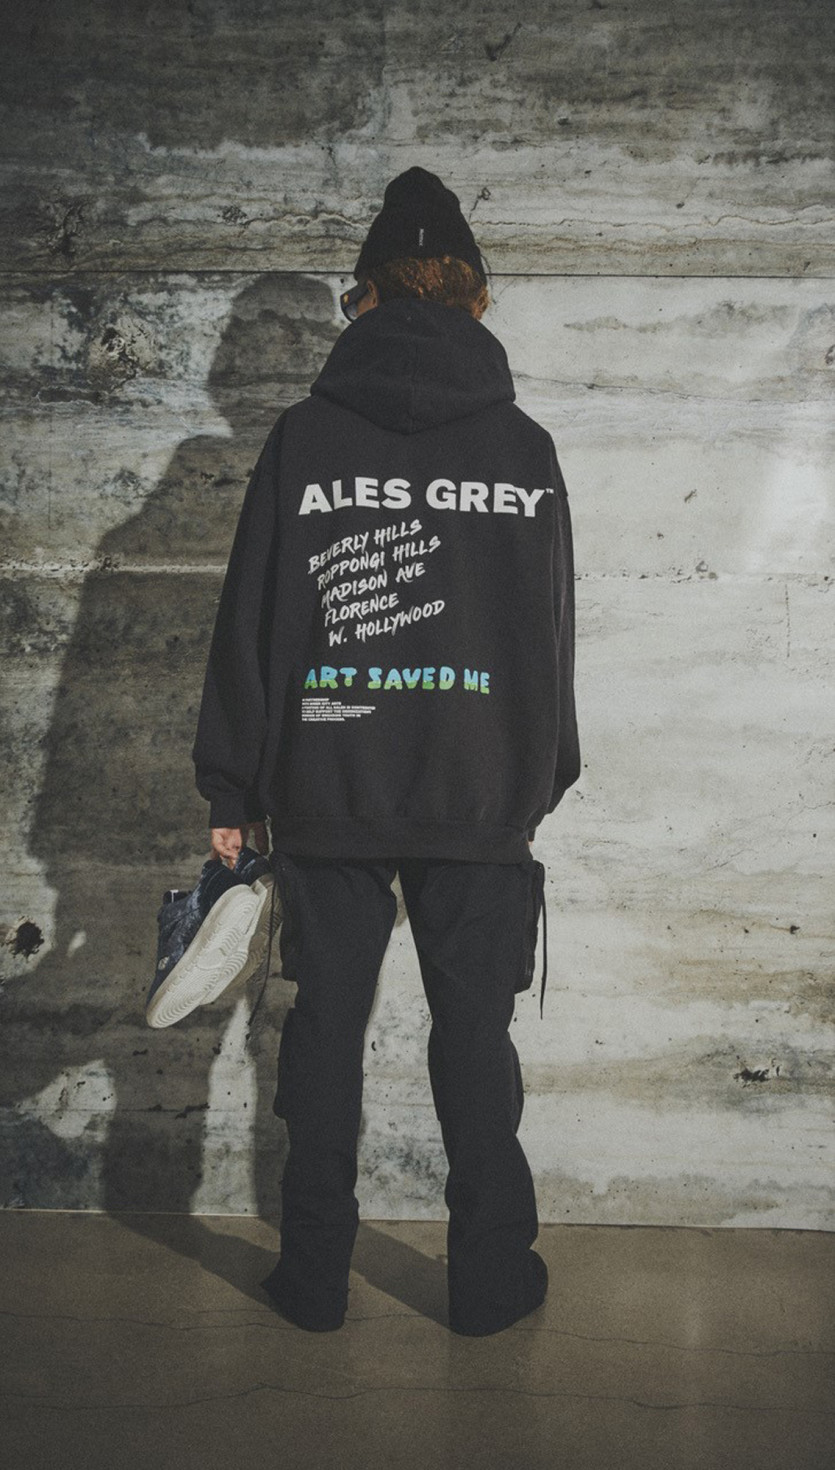 luxury brand ales grey